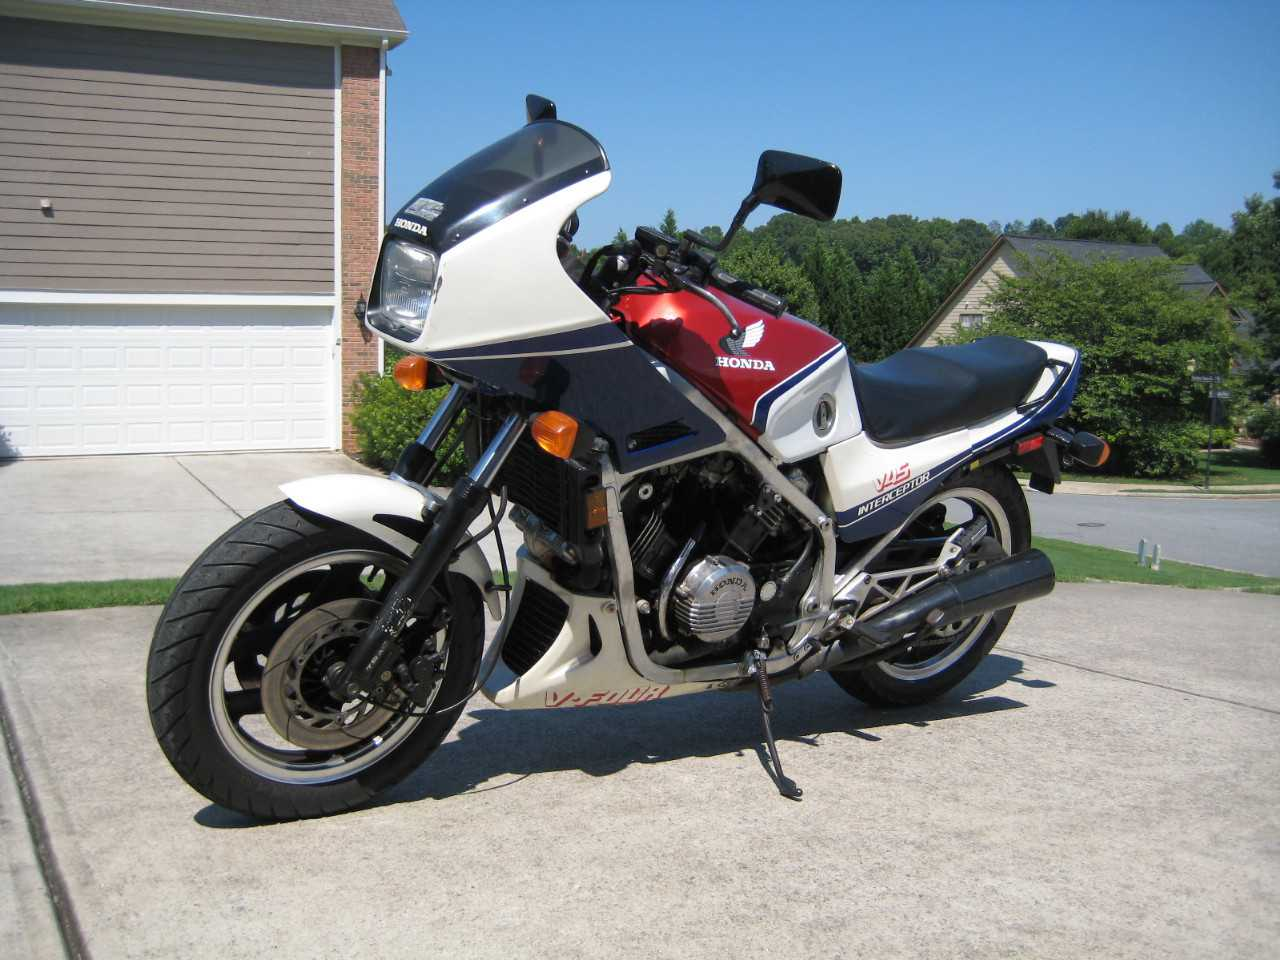 1983 Honda Interceptor VFR750, motorcycle listing